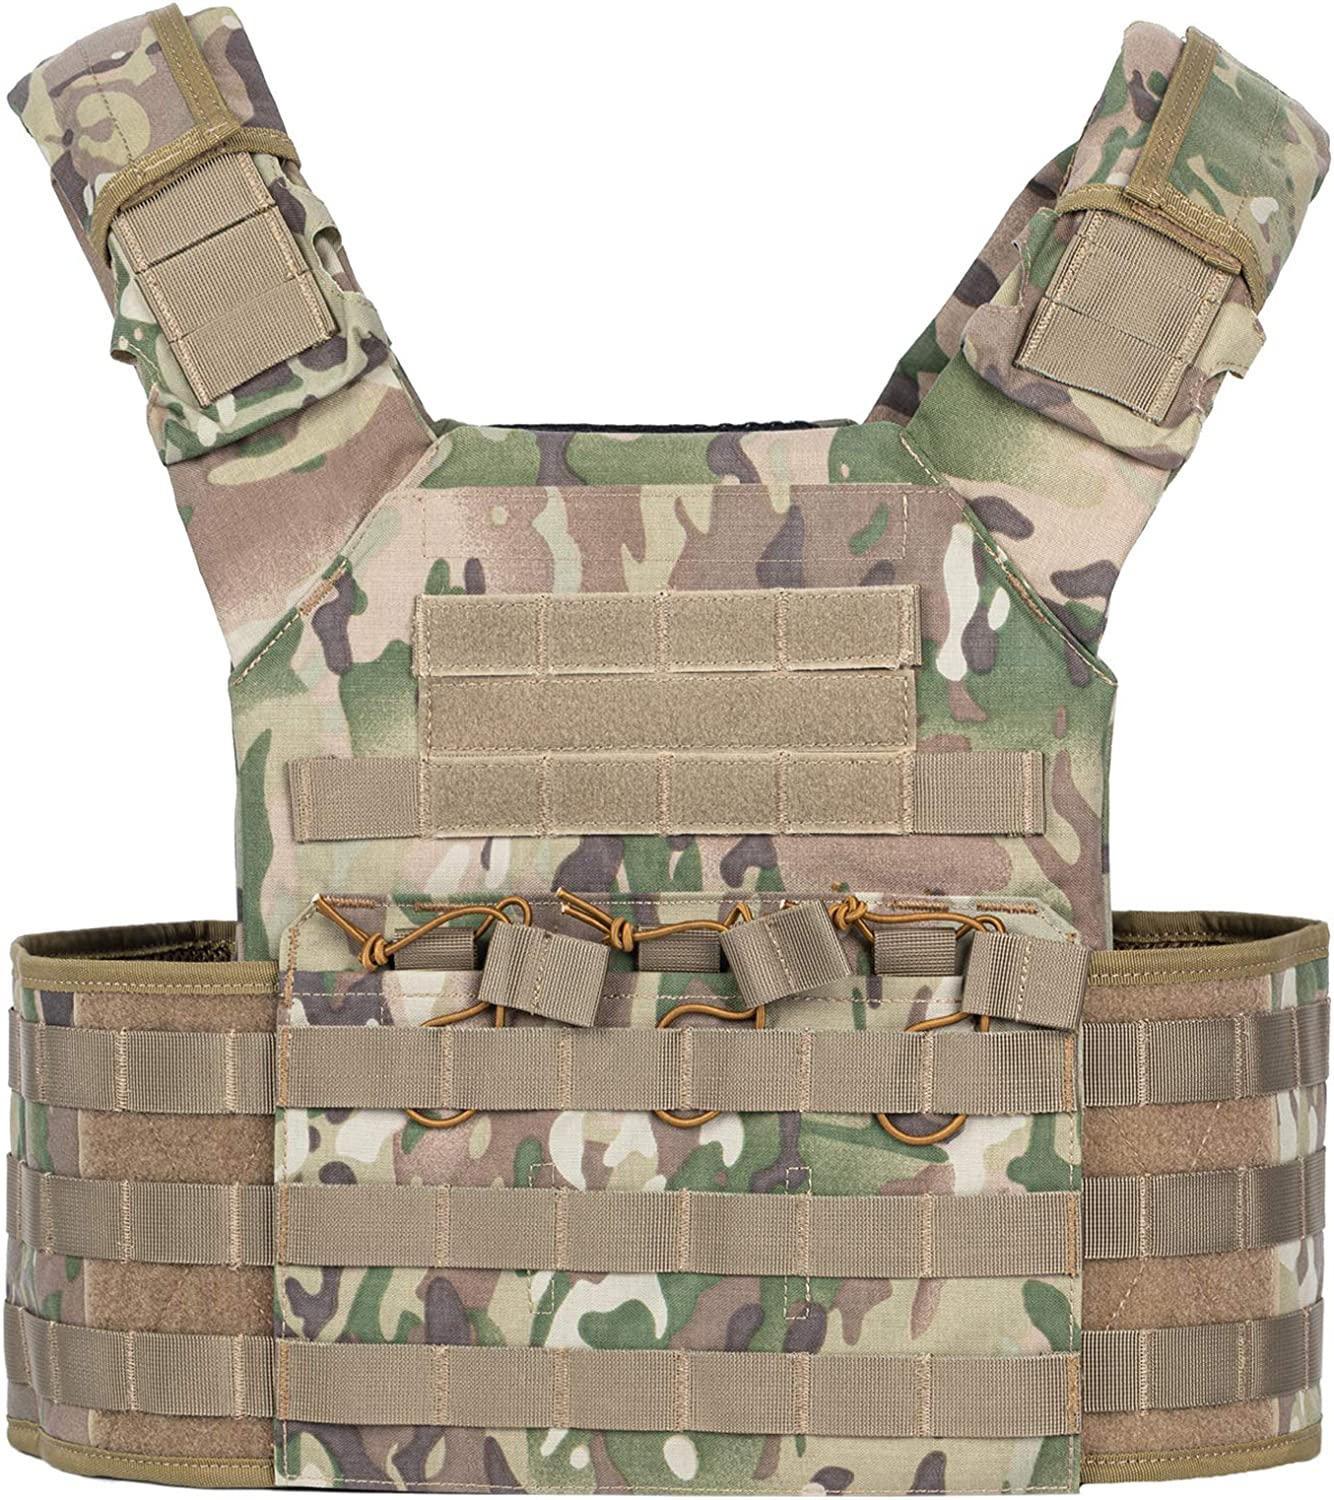 Photo of a vest with camouflage print, with the two side pockets puffed up.